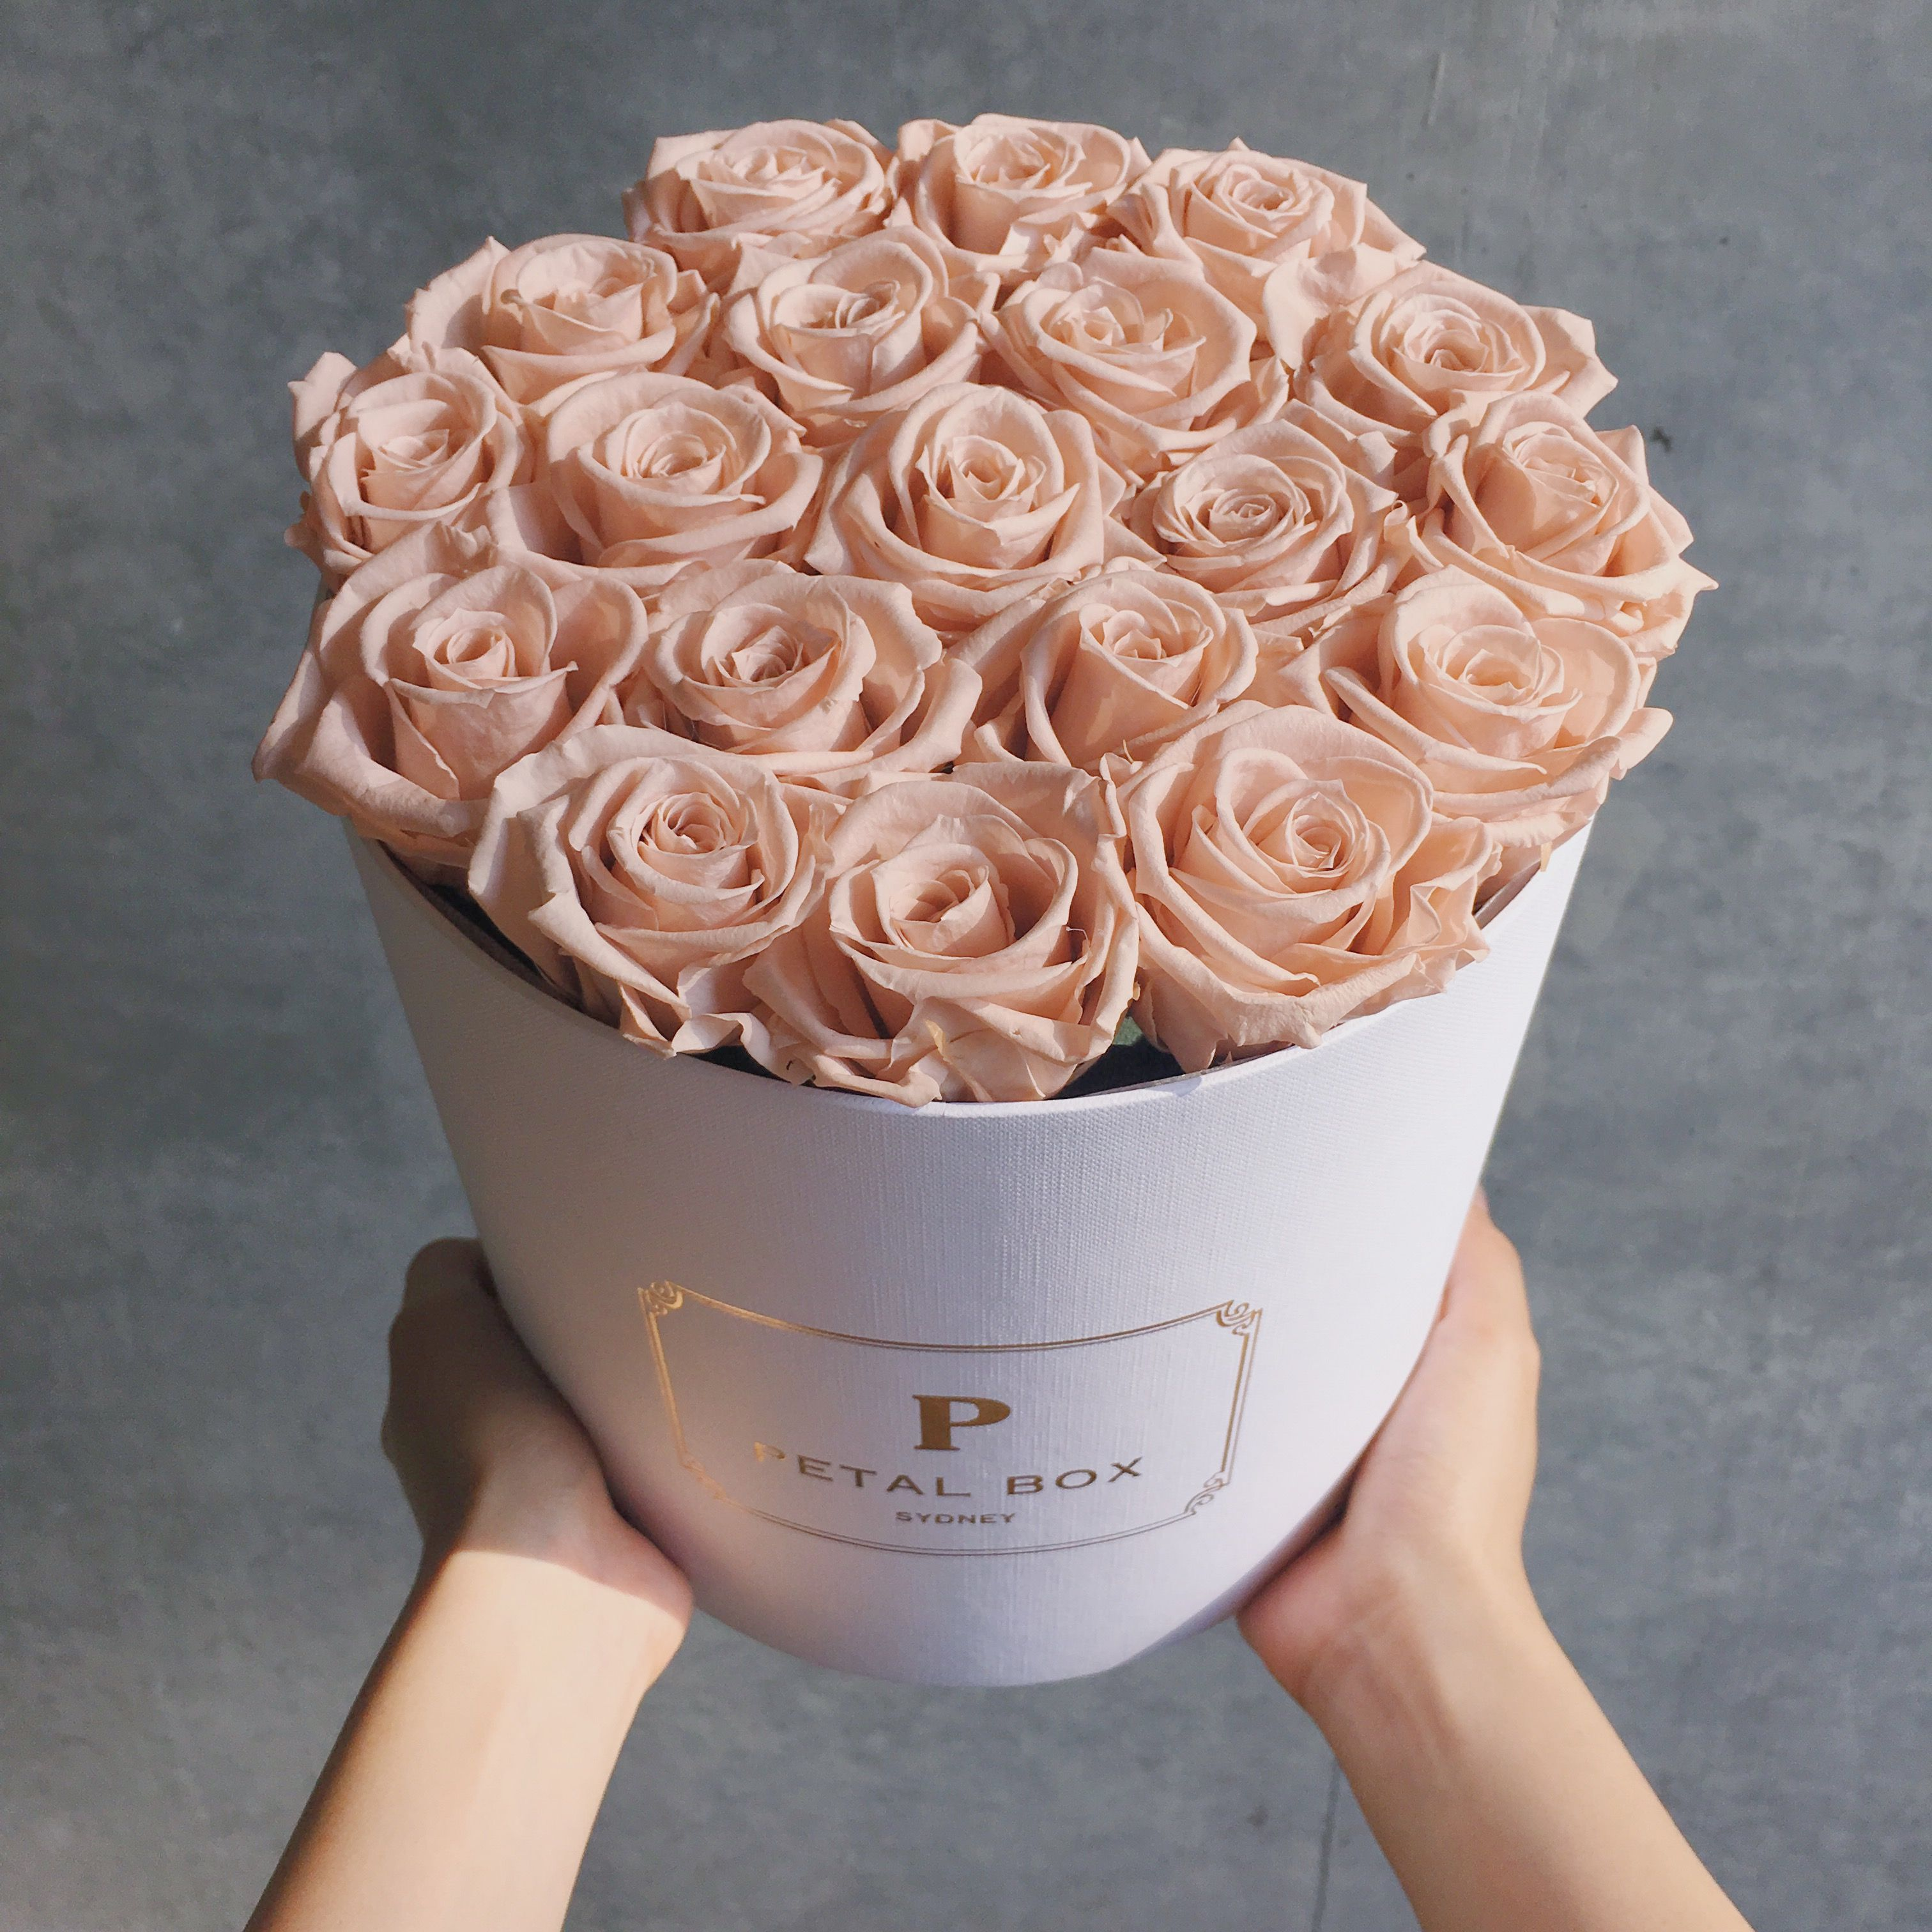 Pin On Long Lasting Roses Flowers Sydney Florist